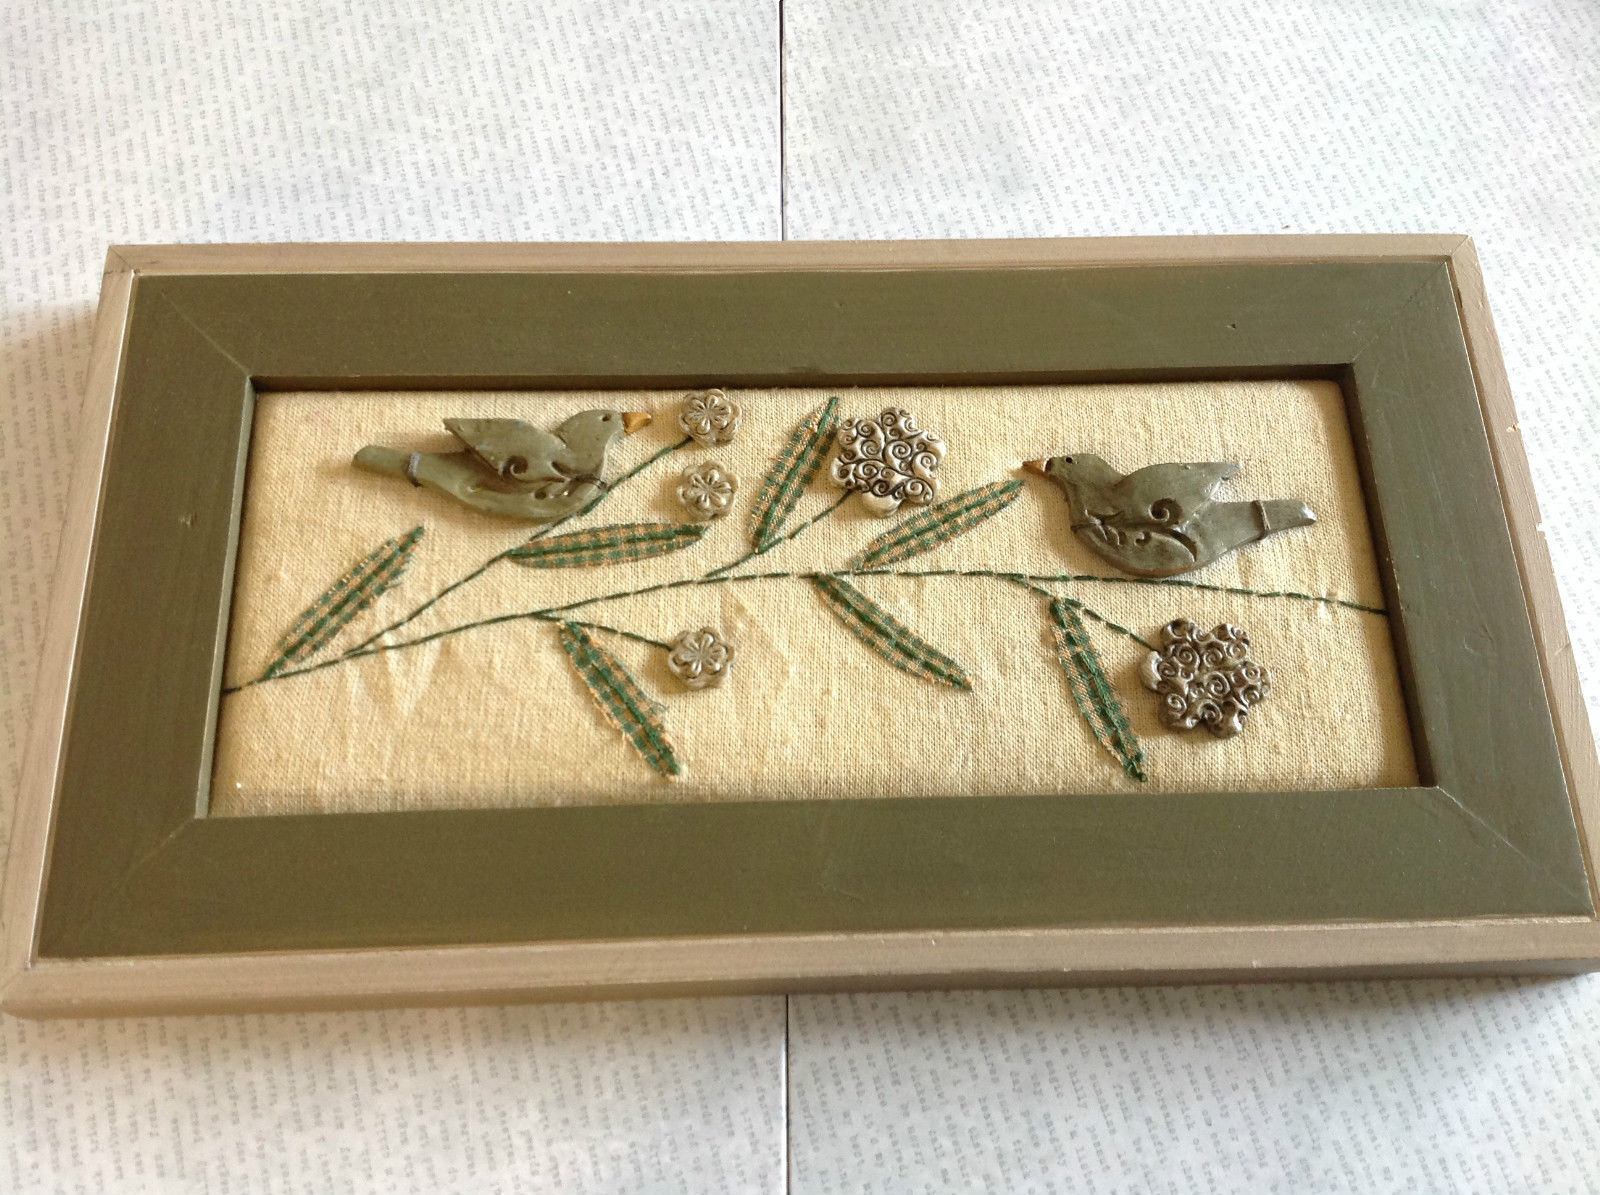 Framed Stitchery Wall Decoration Green Birds on Flower 3D Collage